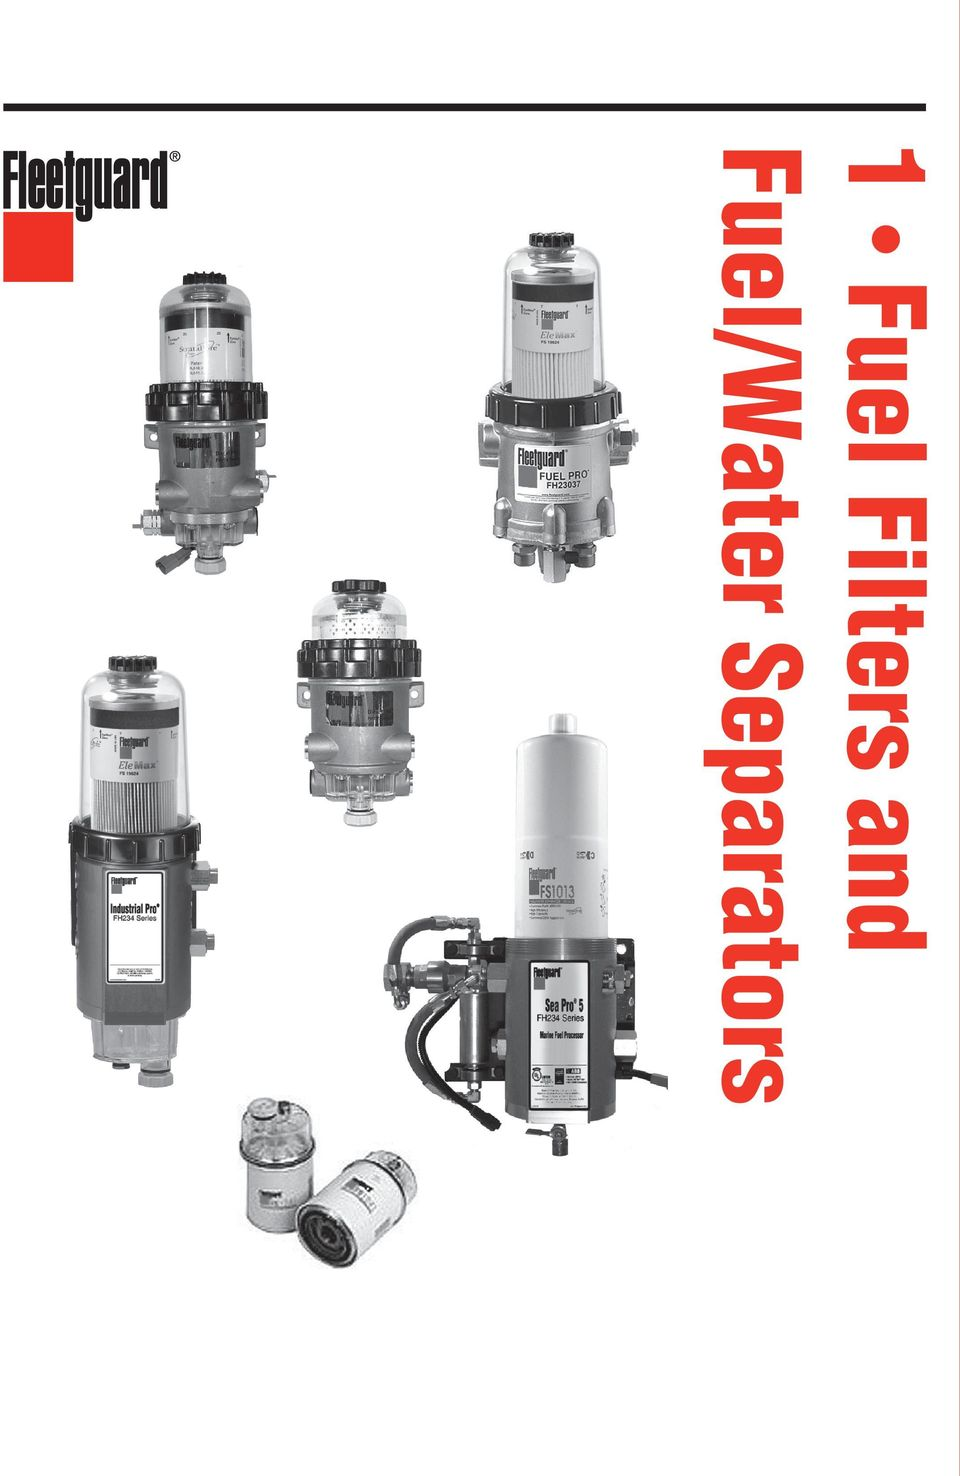 hight resolution of  fuel filtration systems by engine size filter elements by engine application fuel filter elements diverter caps diesel pro diesel pro water in fuel